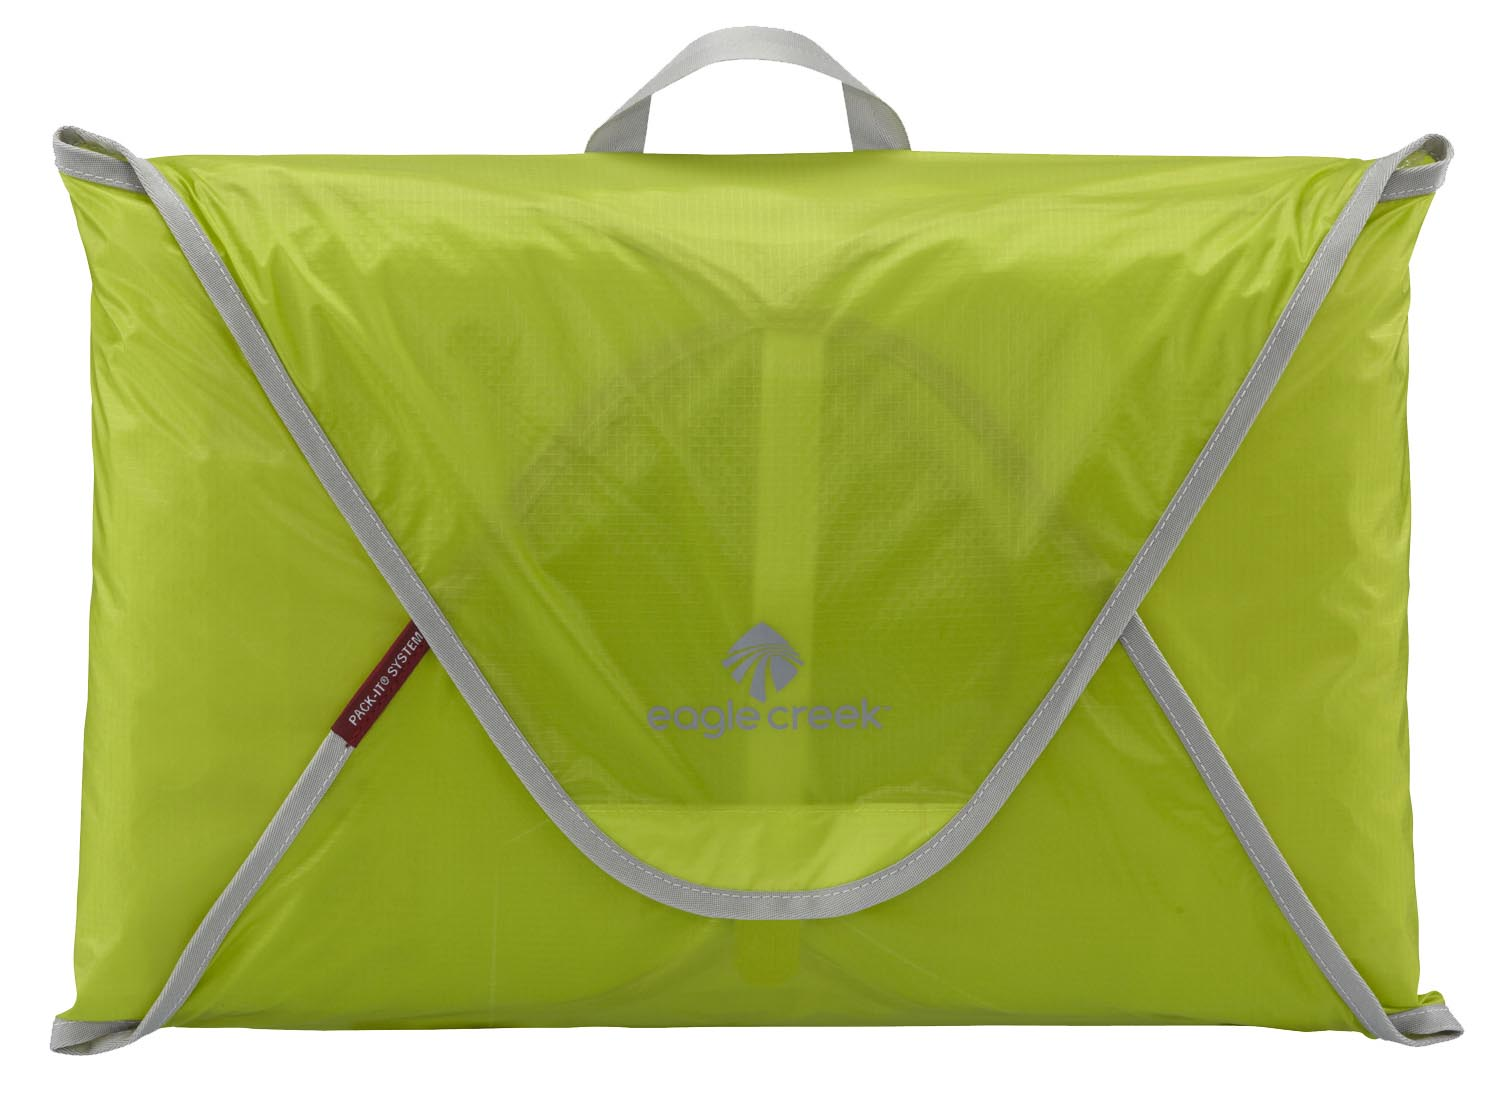 EagleCreek - Pack-It Specter Garment Folder Small Strobe Green - Packing Bags -